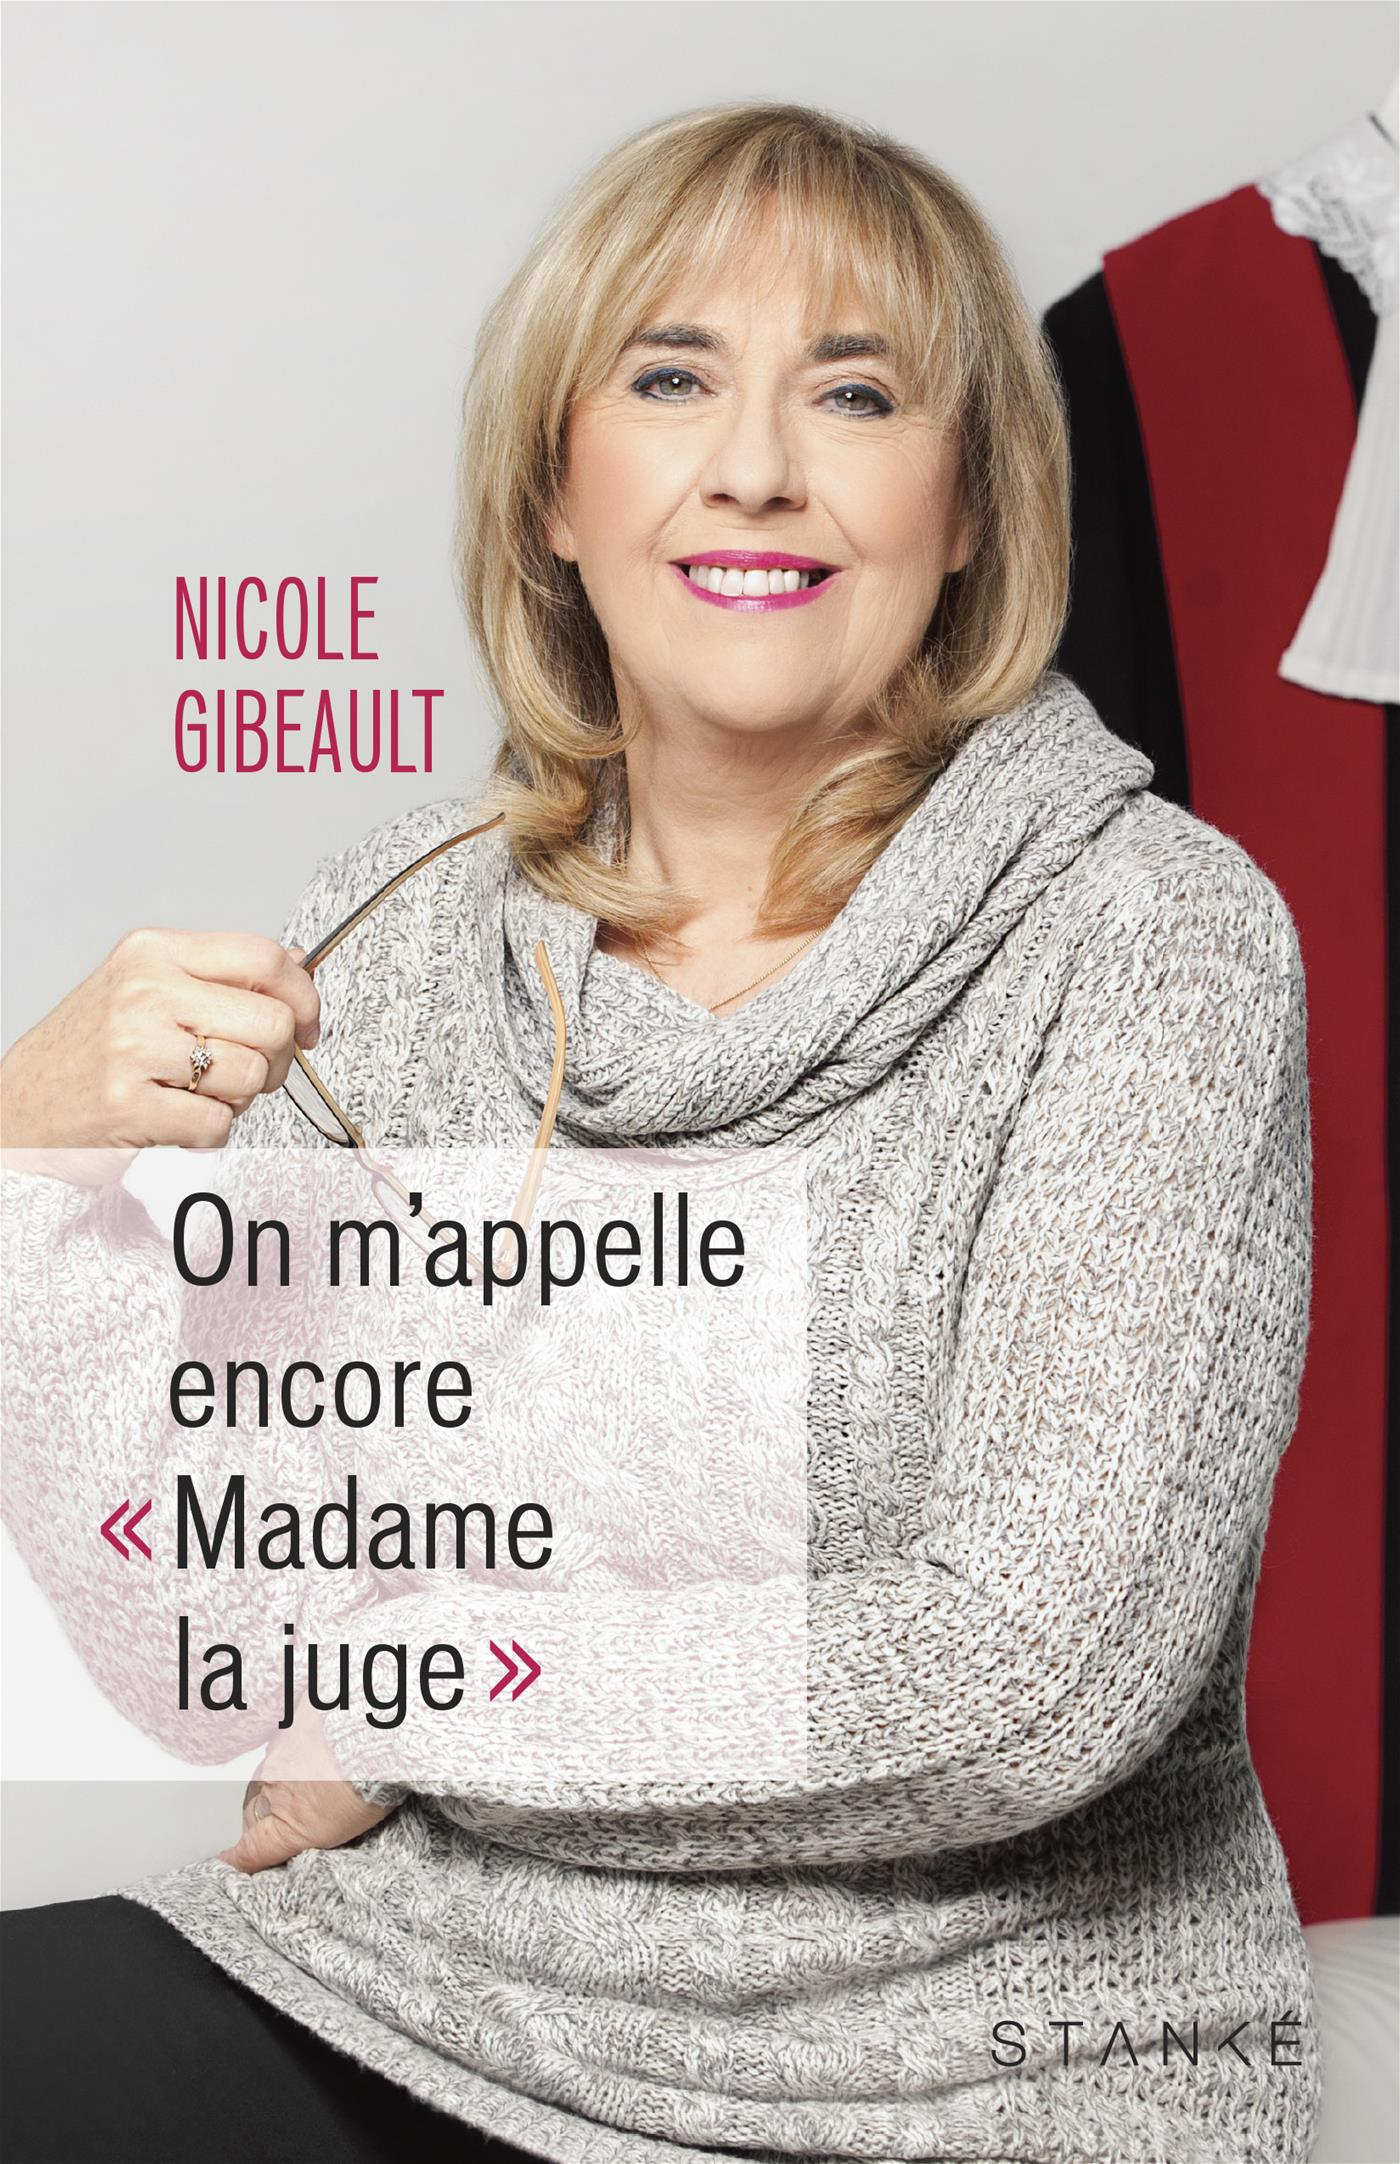 On m'appelle encore « Madame la juge »